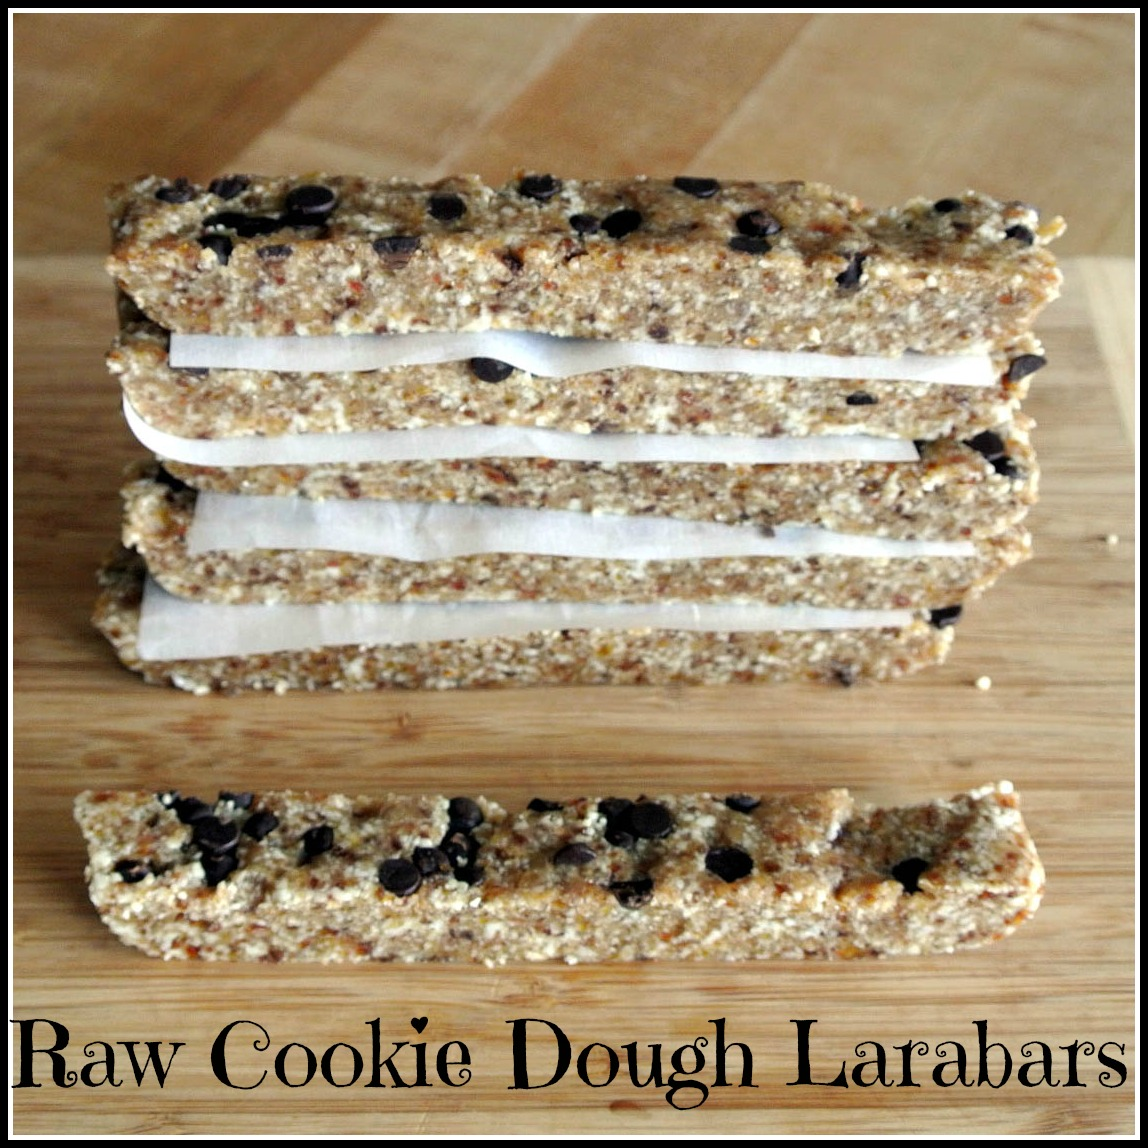 Mom, What's For Dinner?: Chocolate Chip Cookie Dough Larabars